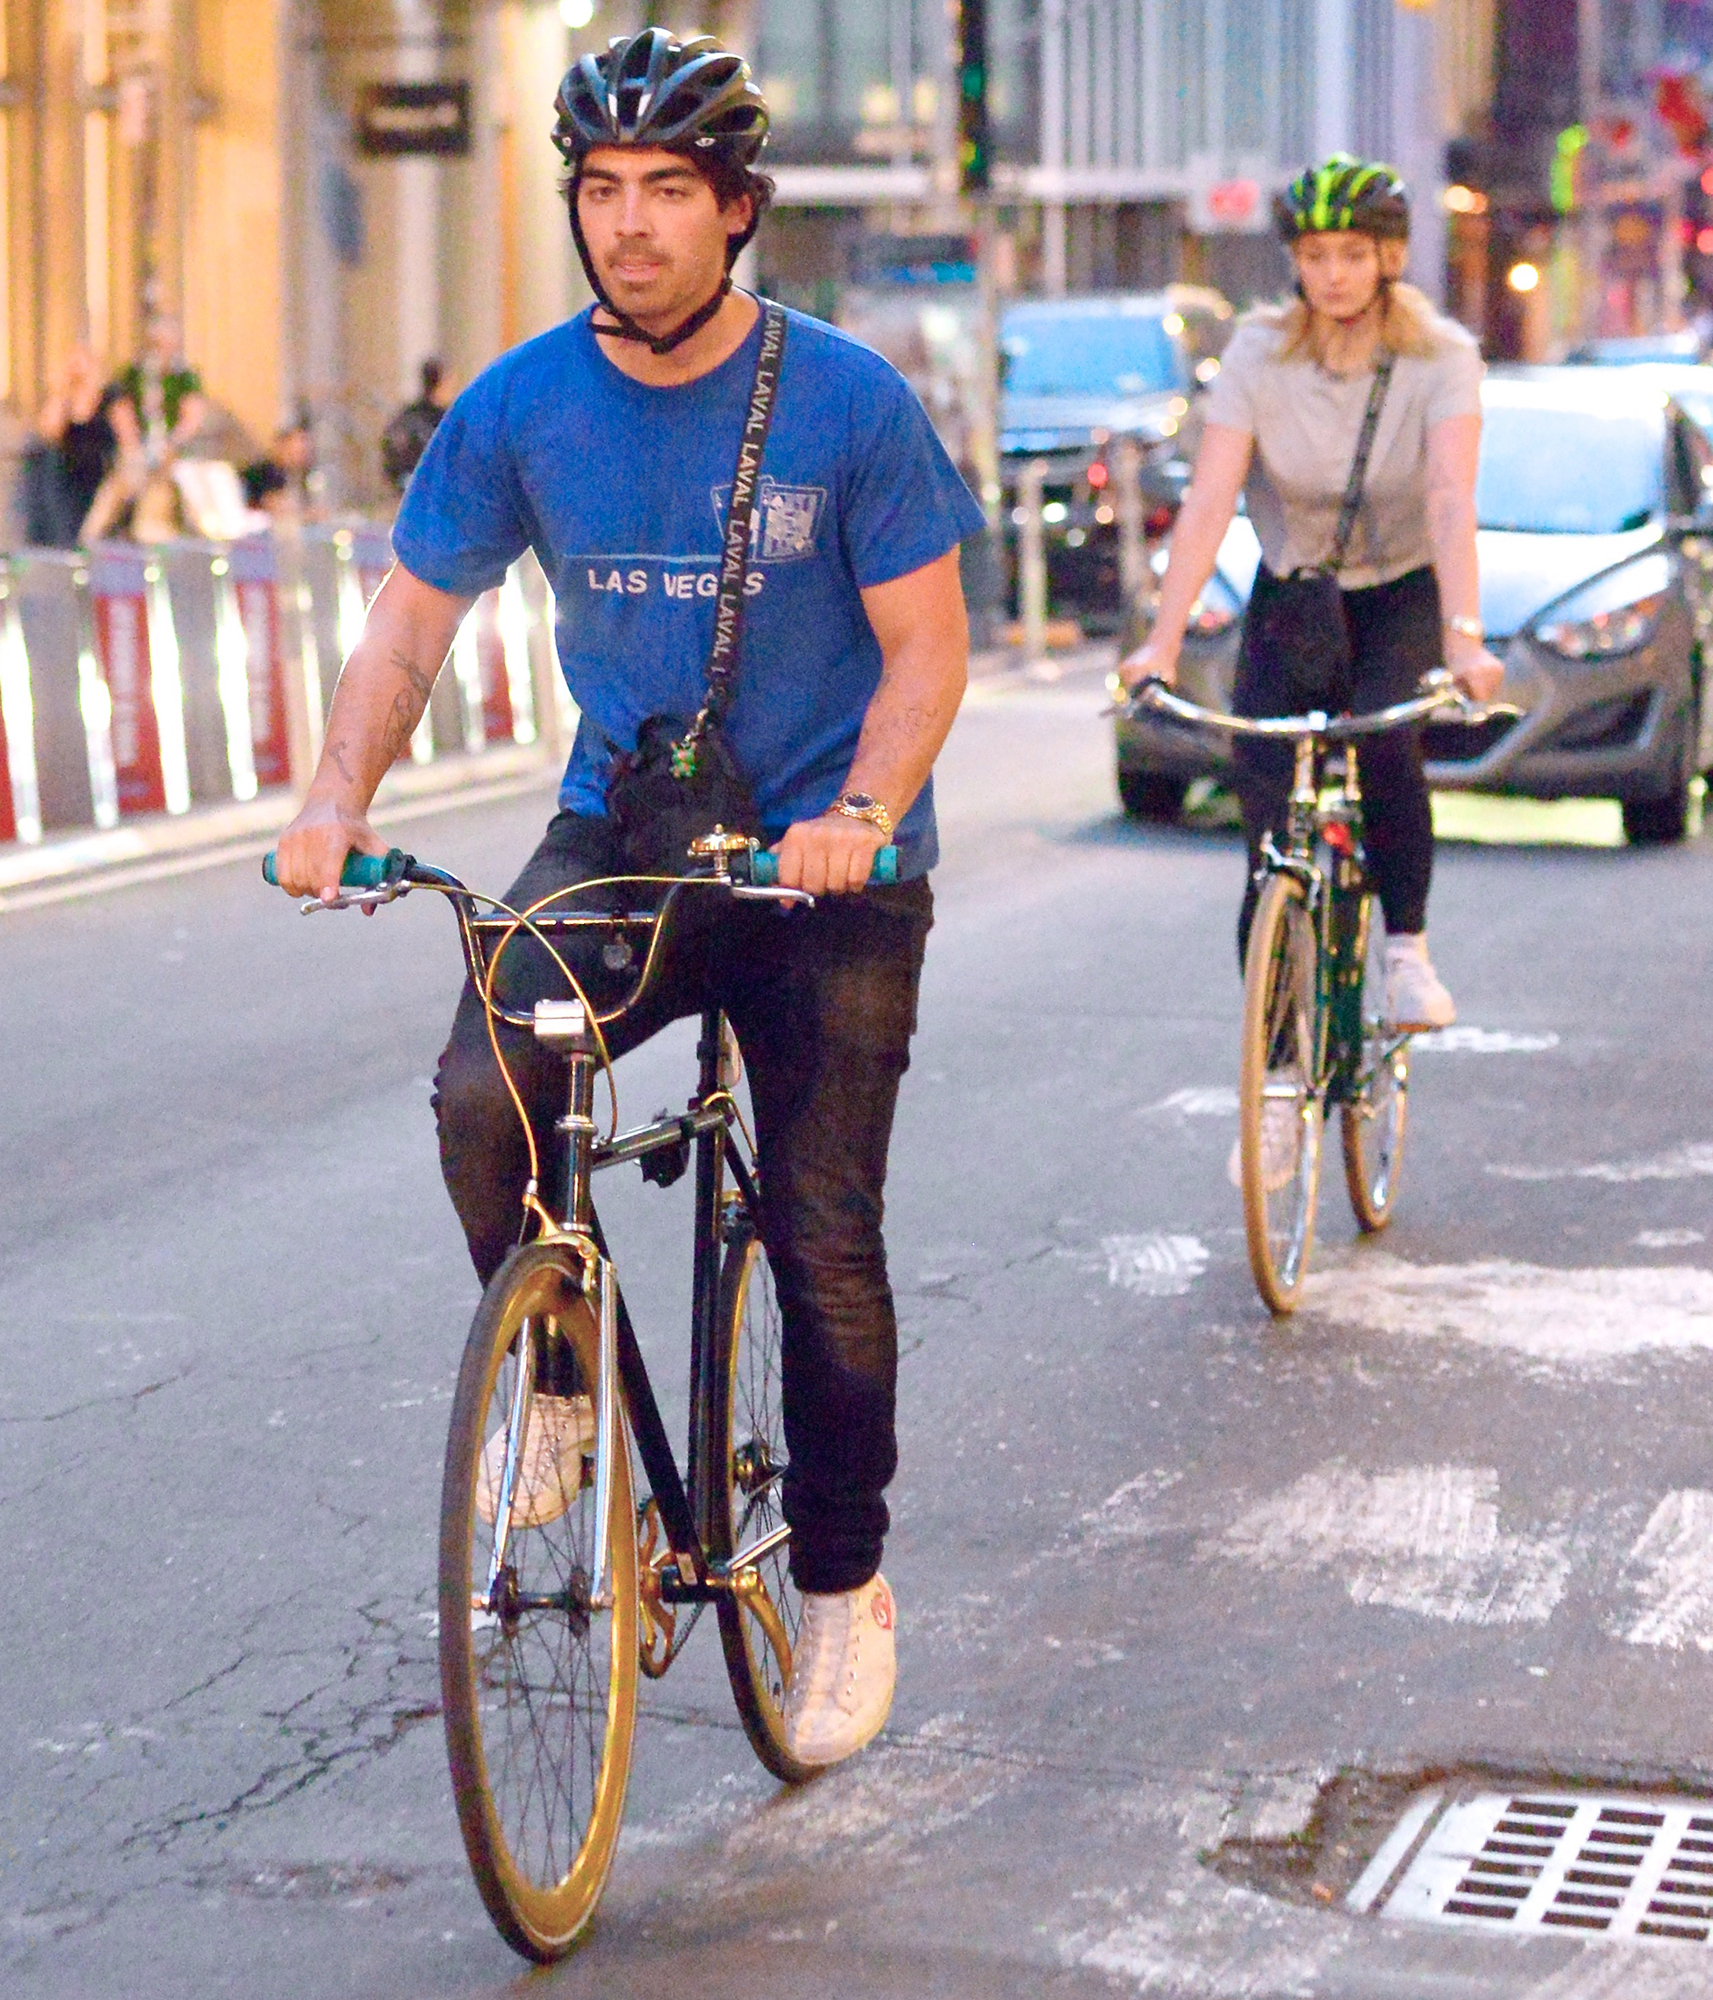 Joe-Jonas-Sophie-Turner-biking - The engaged couple went for a Citi Bike ride through Manhattan on July 20, 2018 — and very responsibly wore helmets.